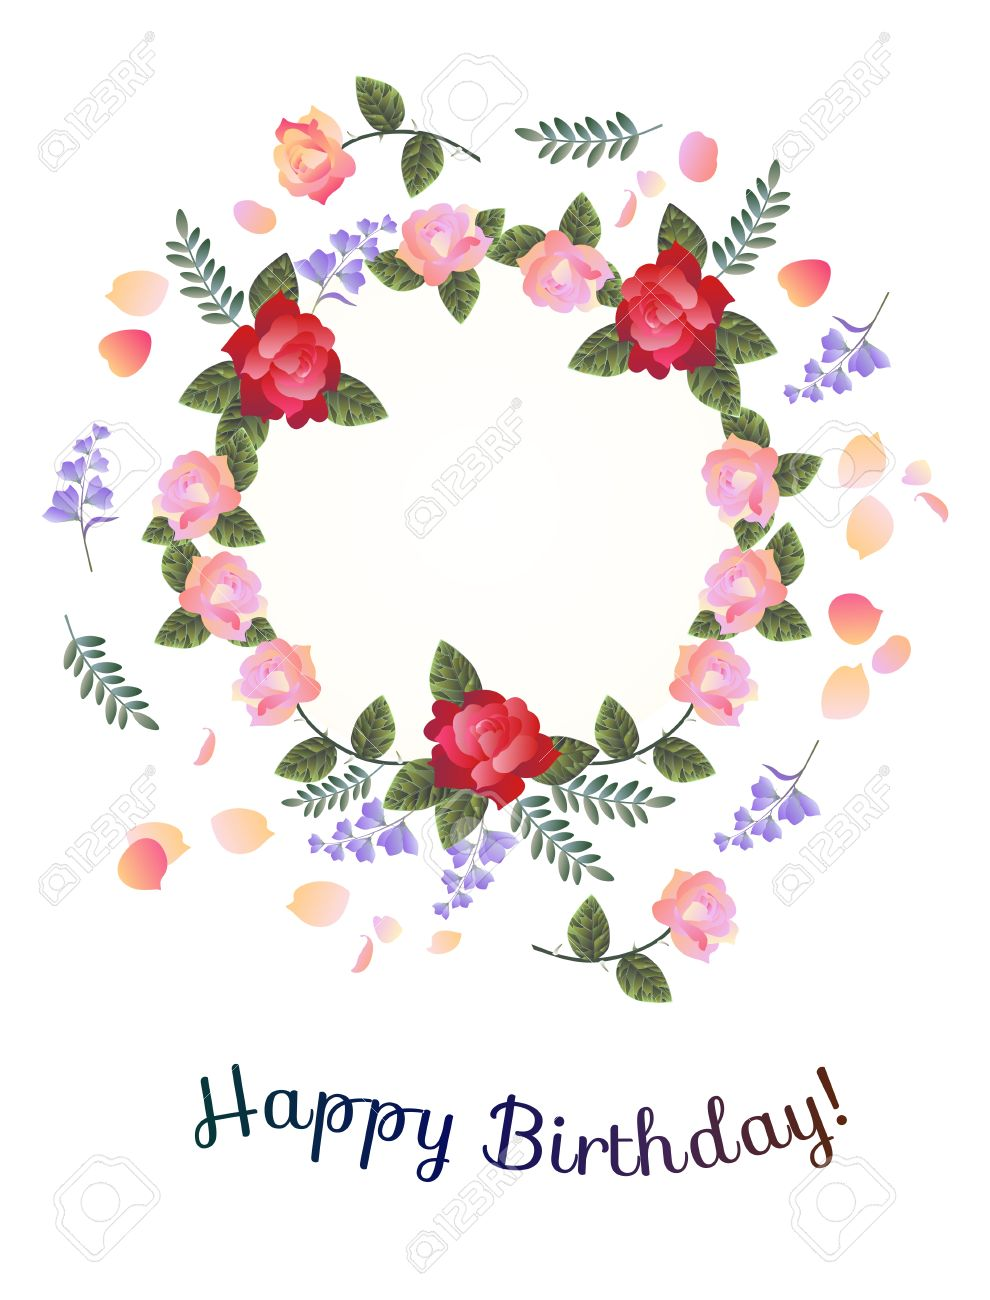 Happy Birthday Greeting Card Beautiful Floral Wreath With Red And Pink Roses Bell Flowers